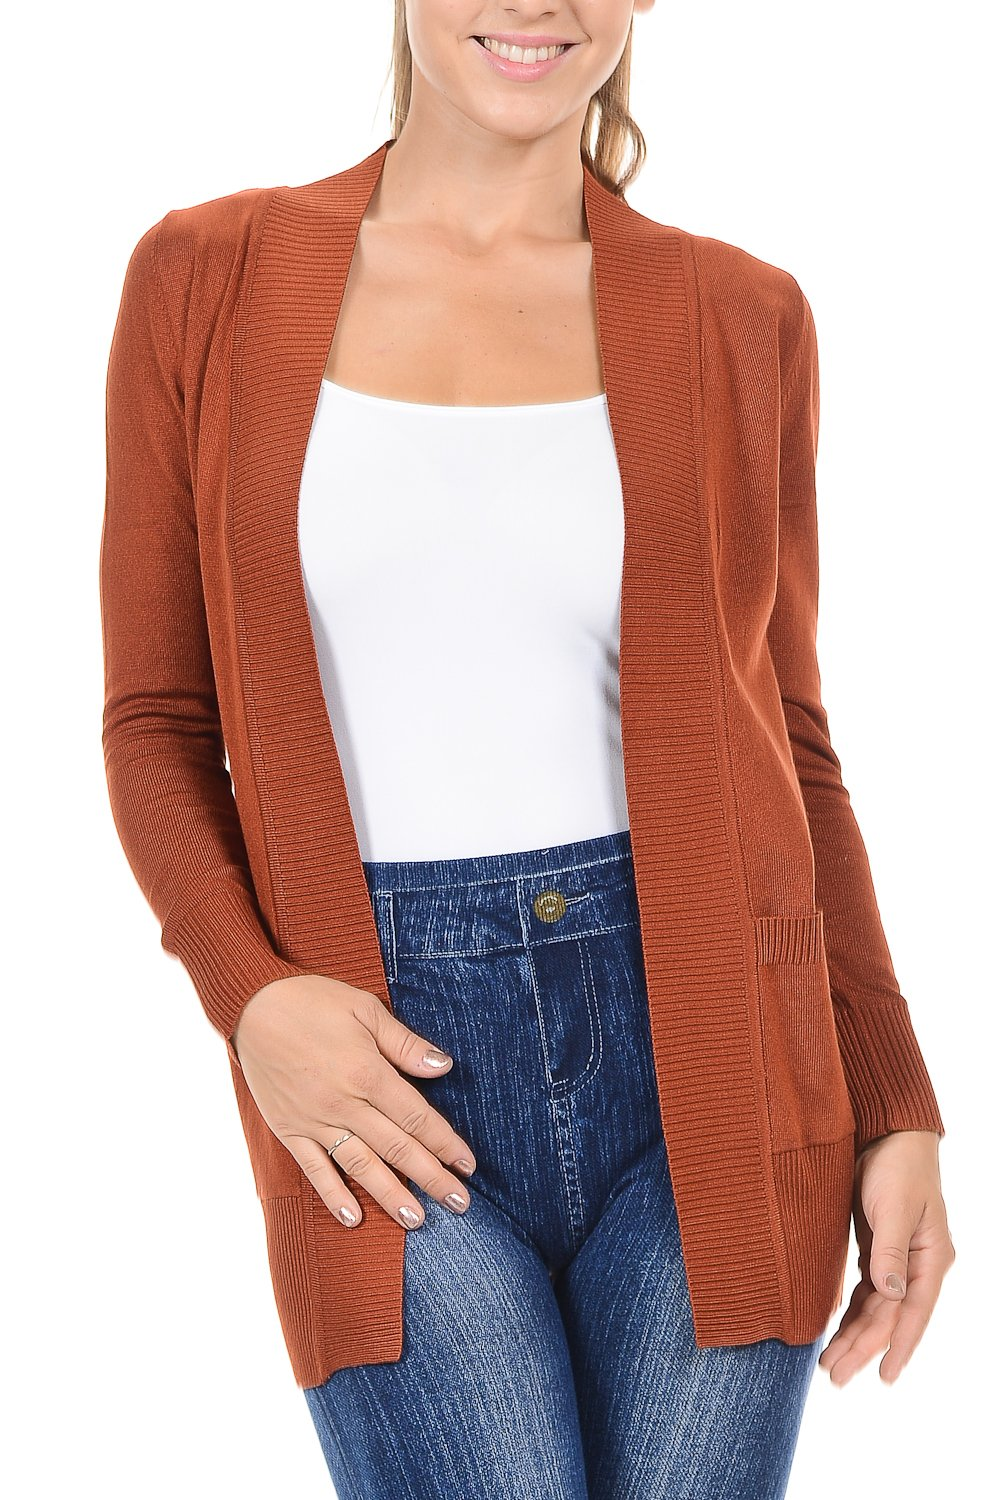 YourStyle Women Open Front Long Sleeve Classic Knit Cardigan (Medium, Amber)